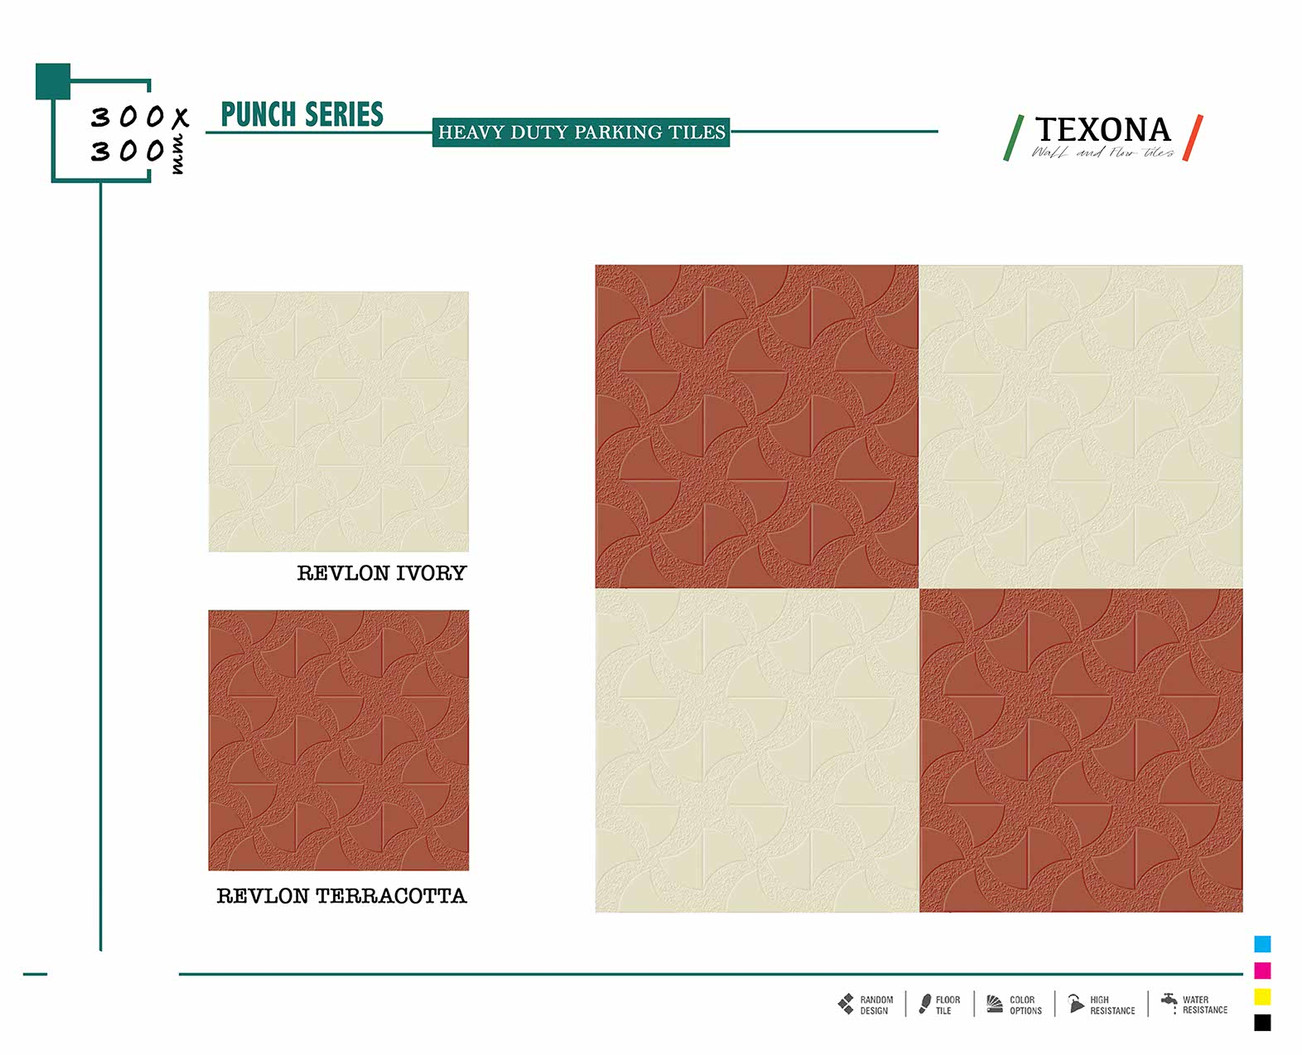 12X12 IVORY & TERRACOTTA PARKING_Page_6_